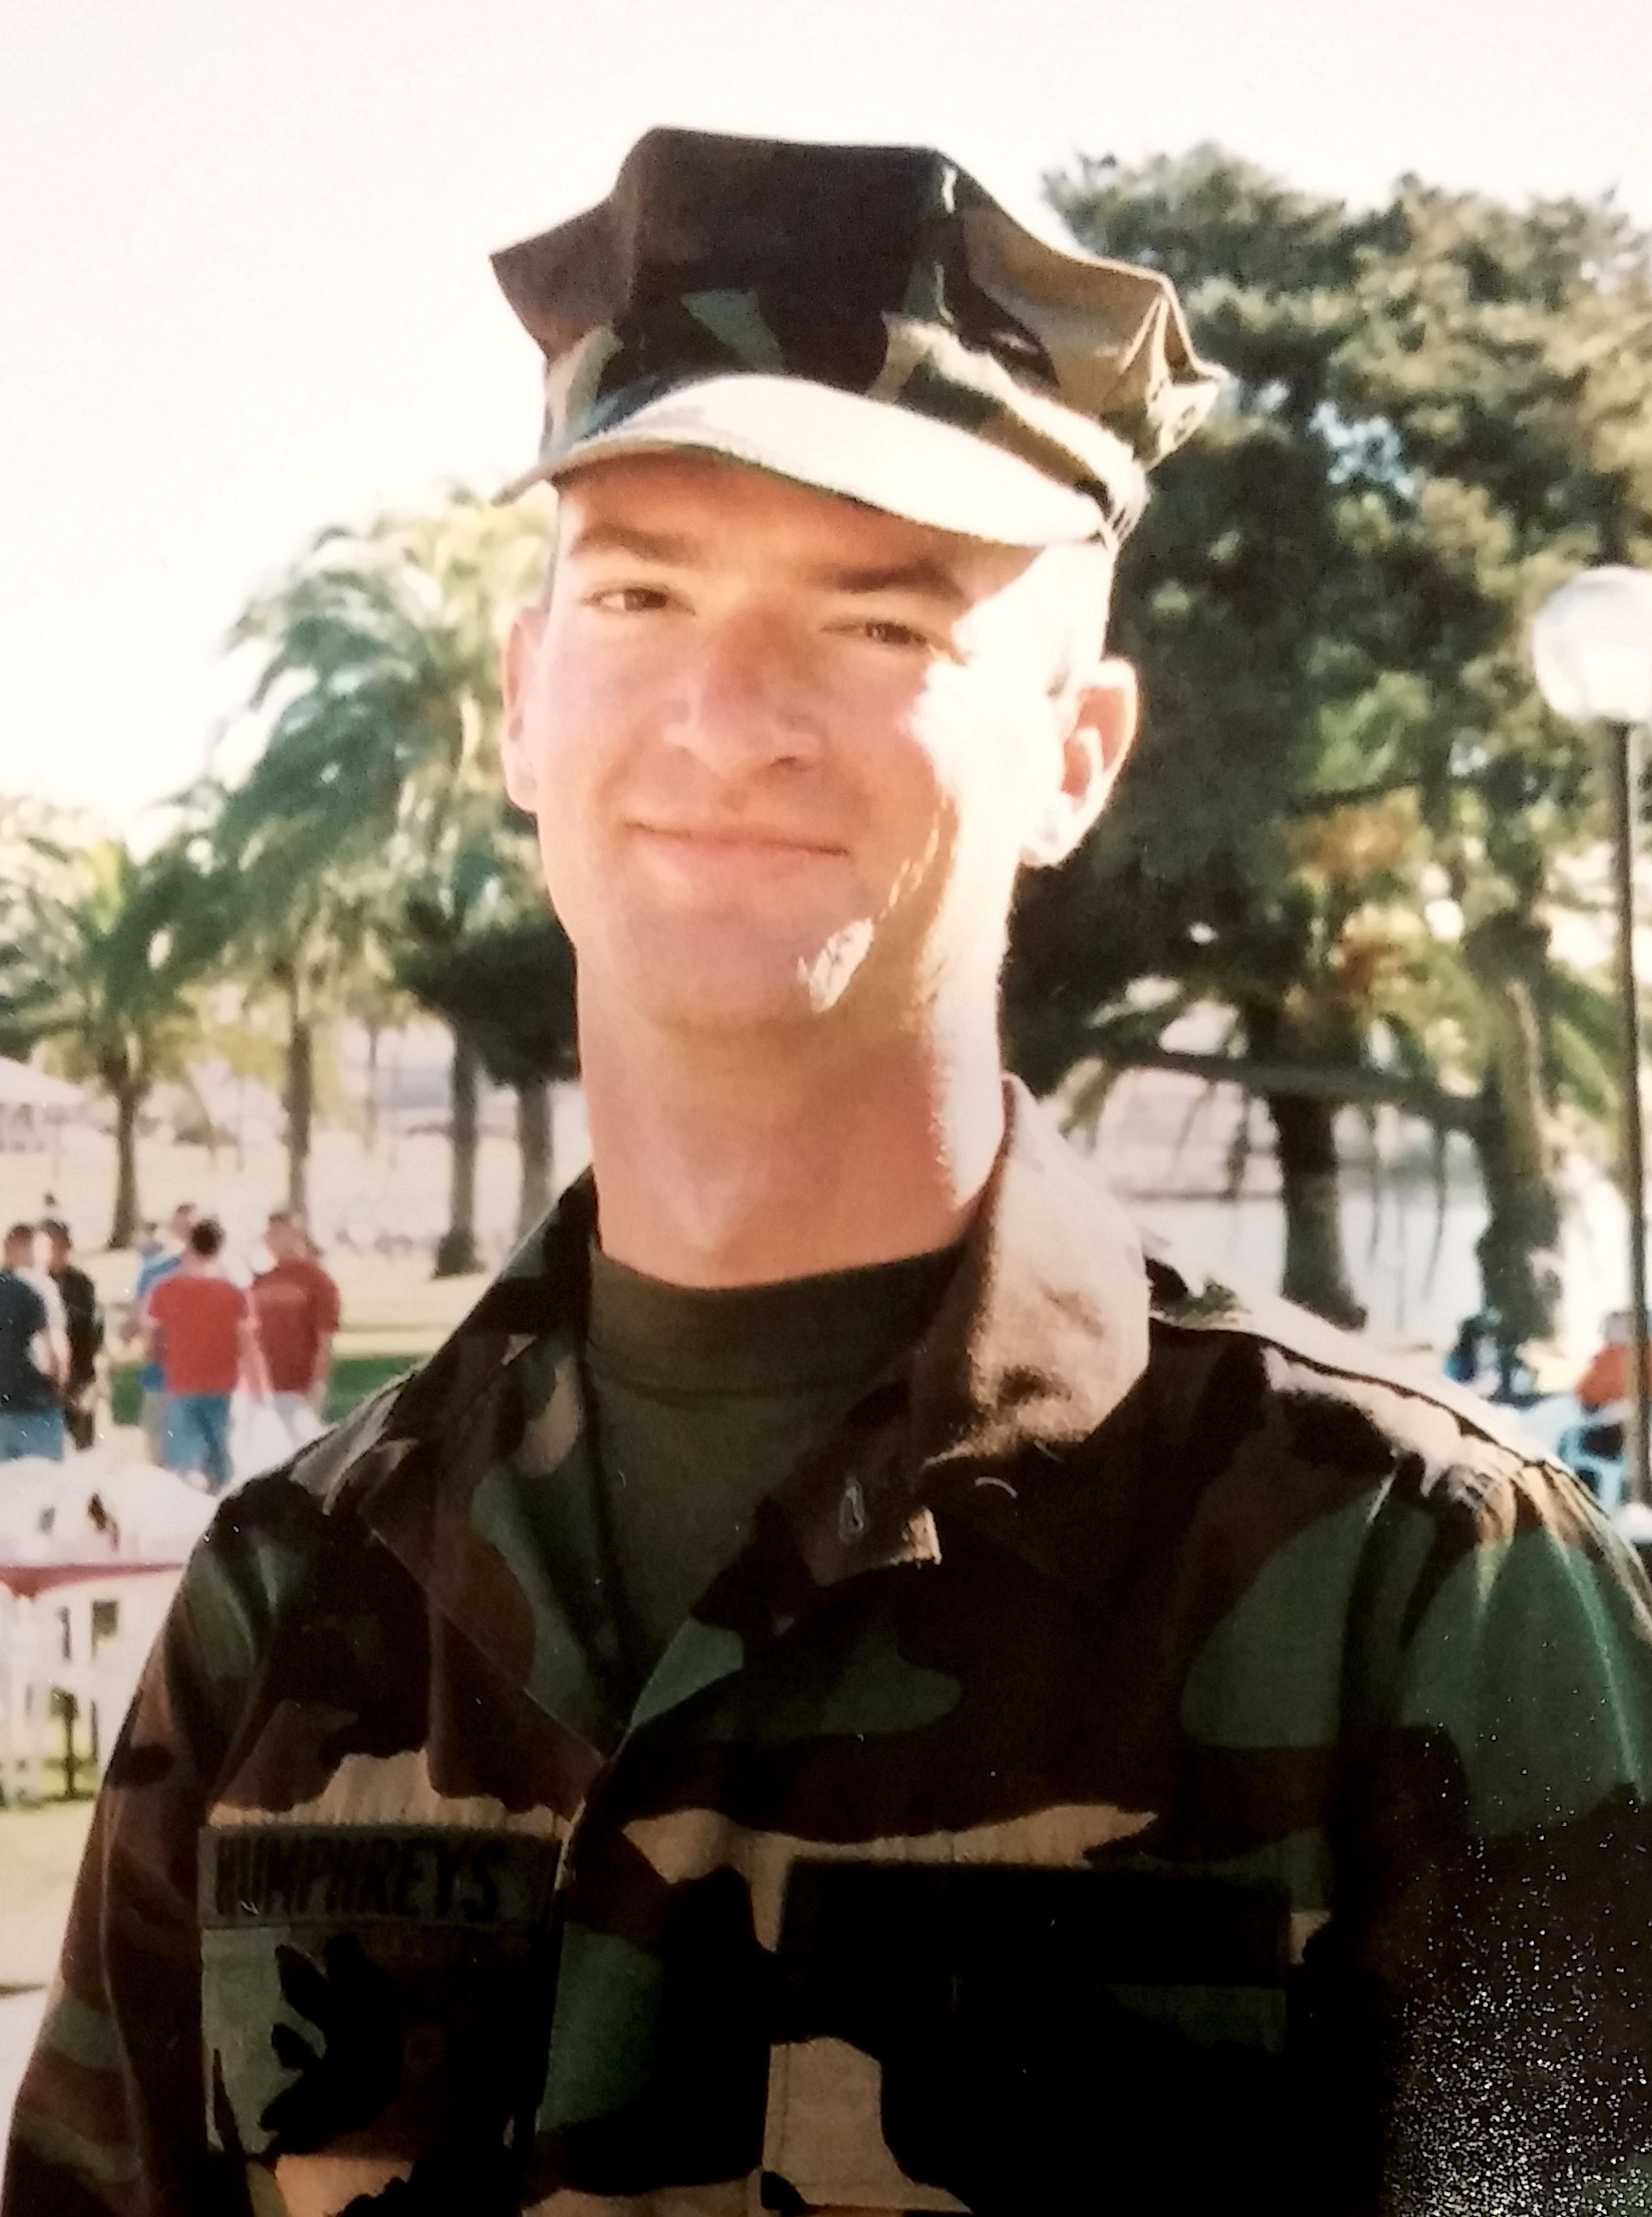 Brian just before graduation at boot camp in 2000.